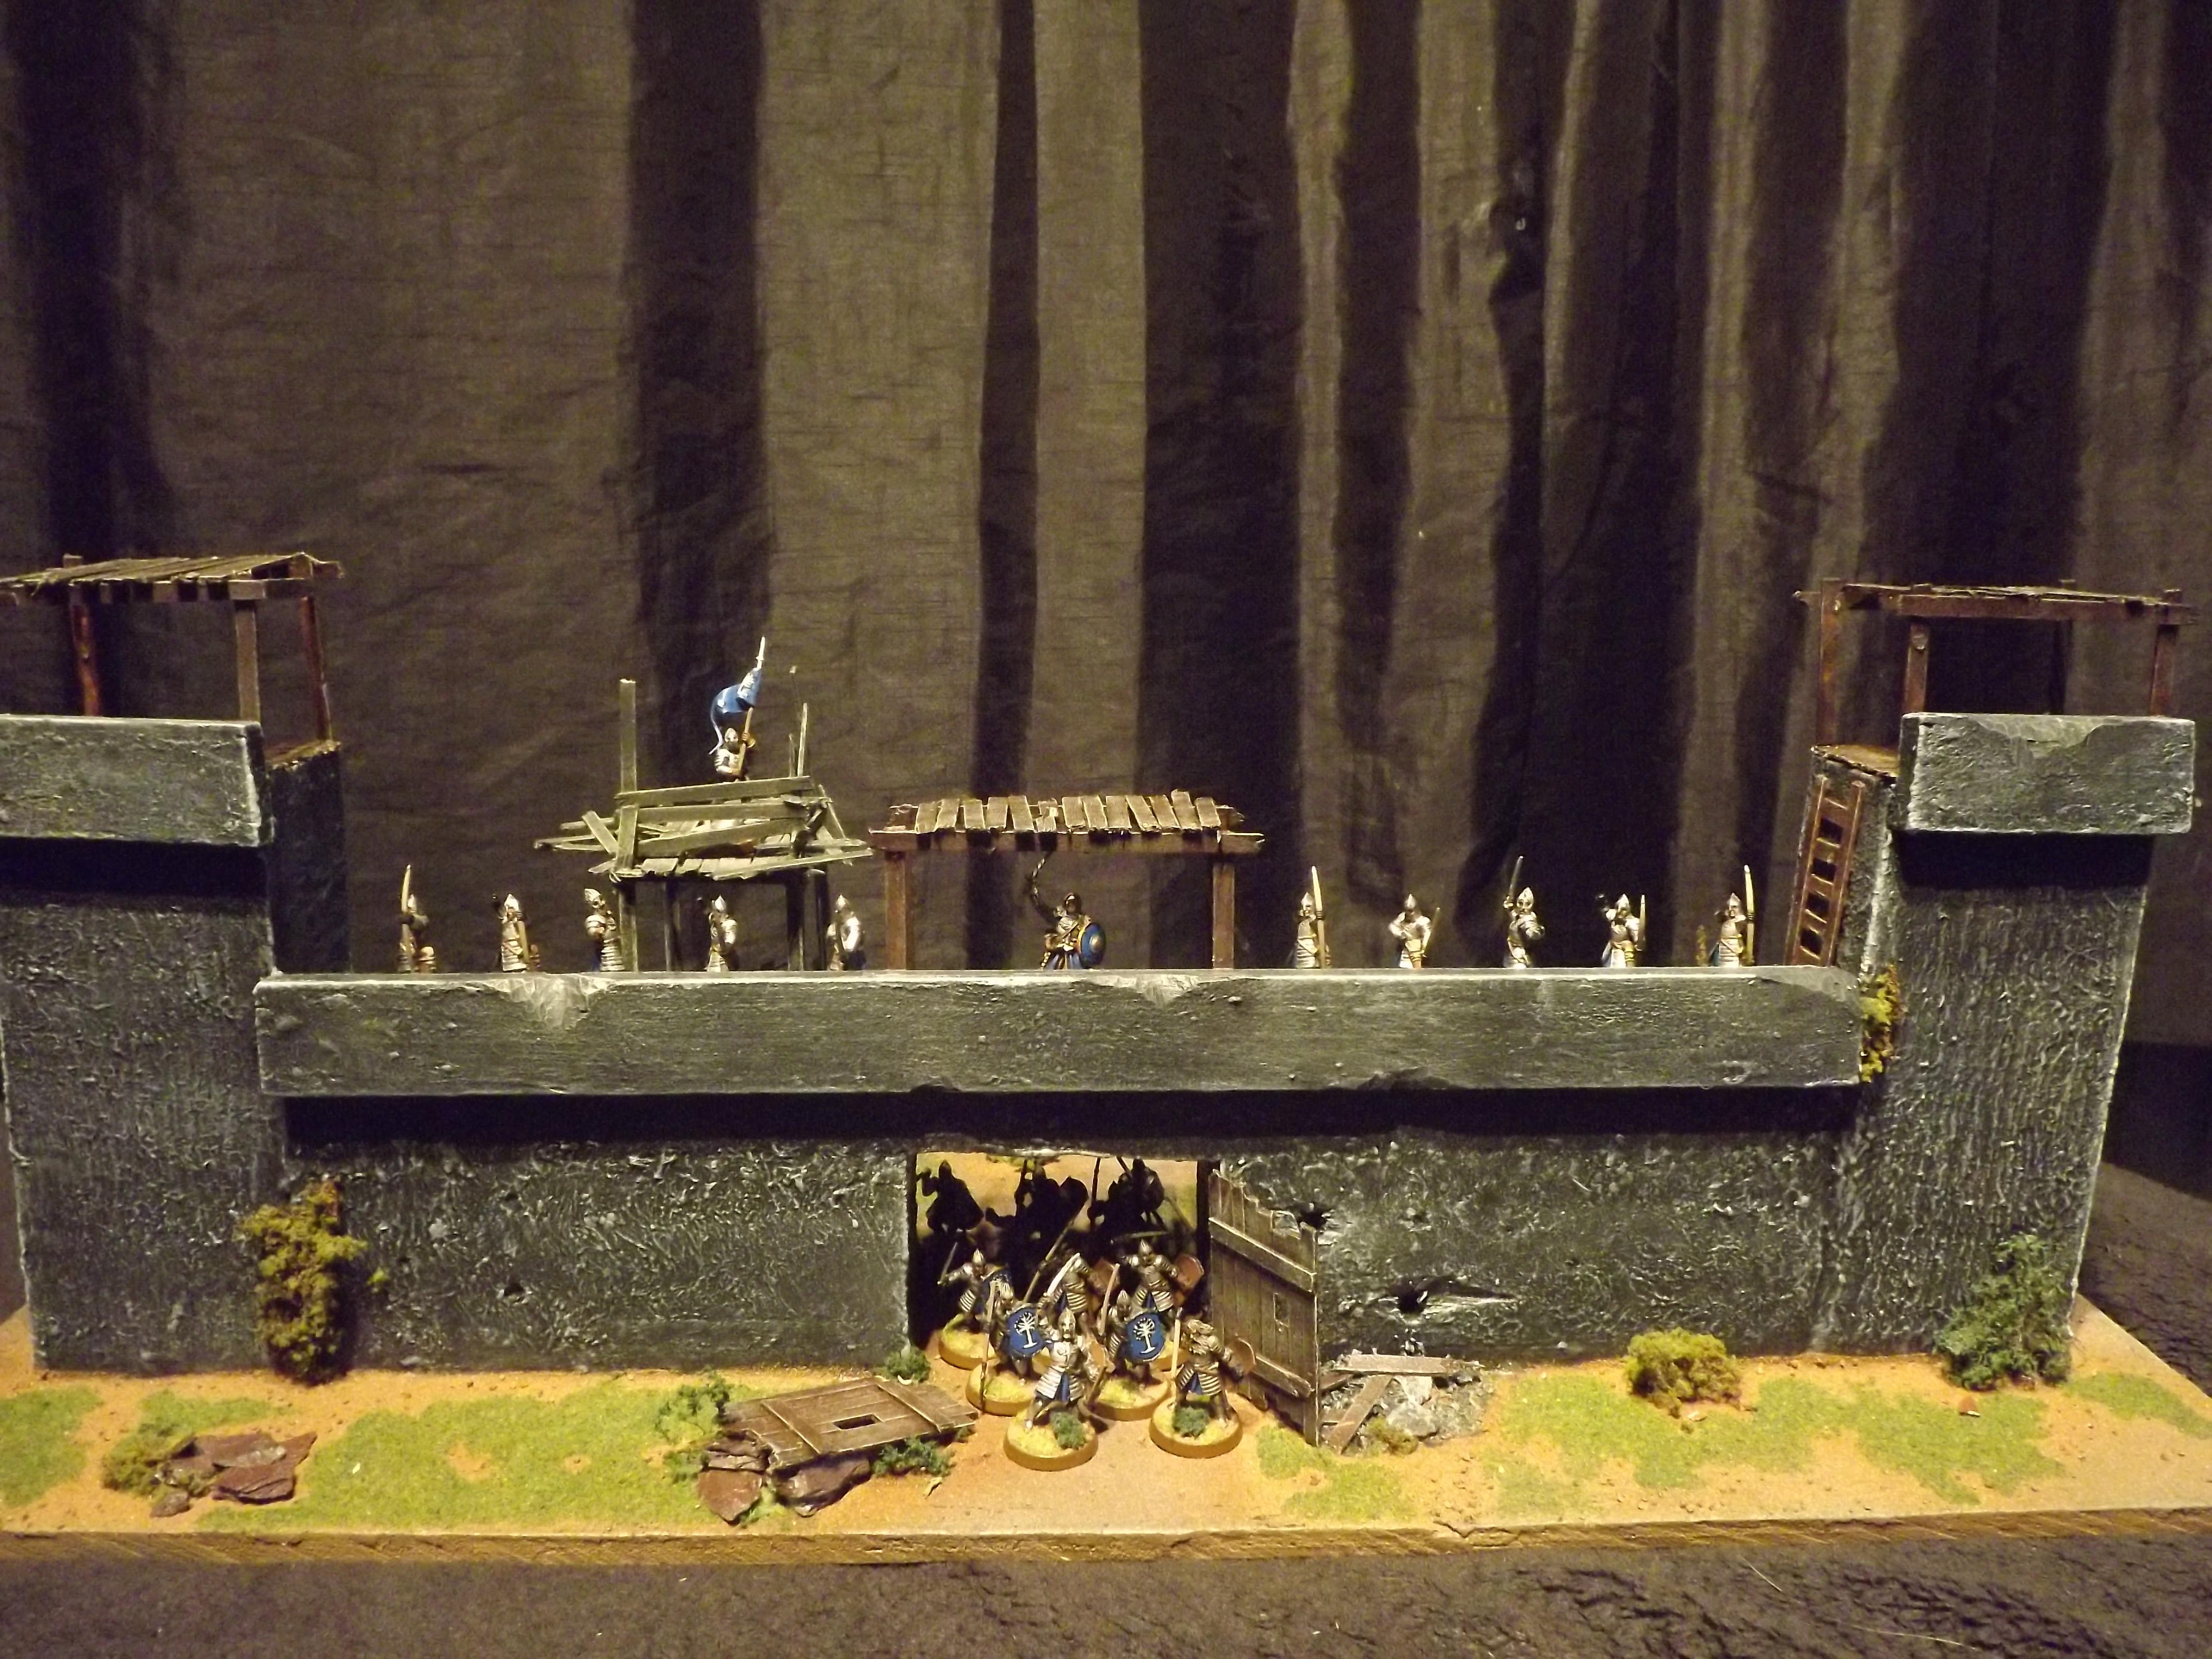 Battle, Castle, Fort, Gondor, Lord Of The Rings, Orcs, Orks, Playing Board, Playing Table, Seige